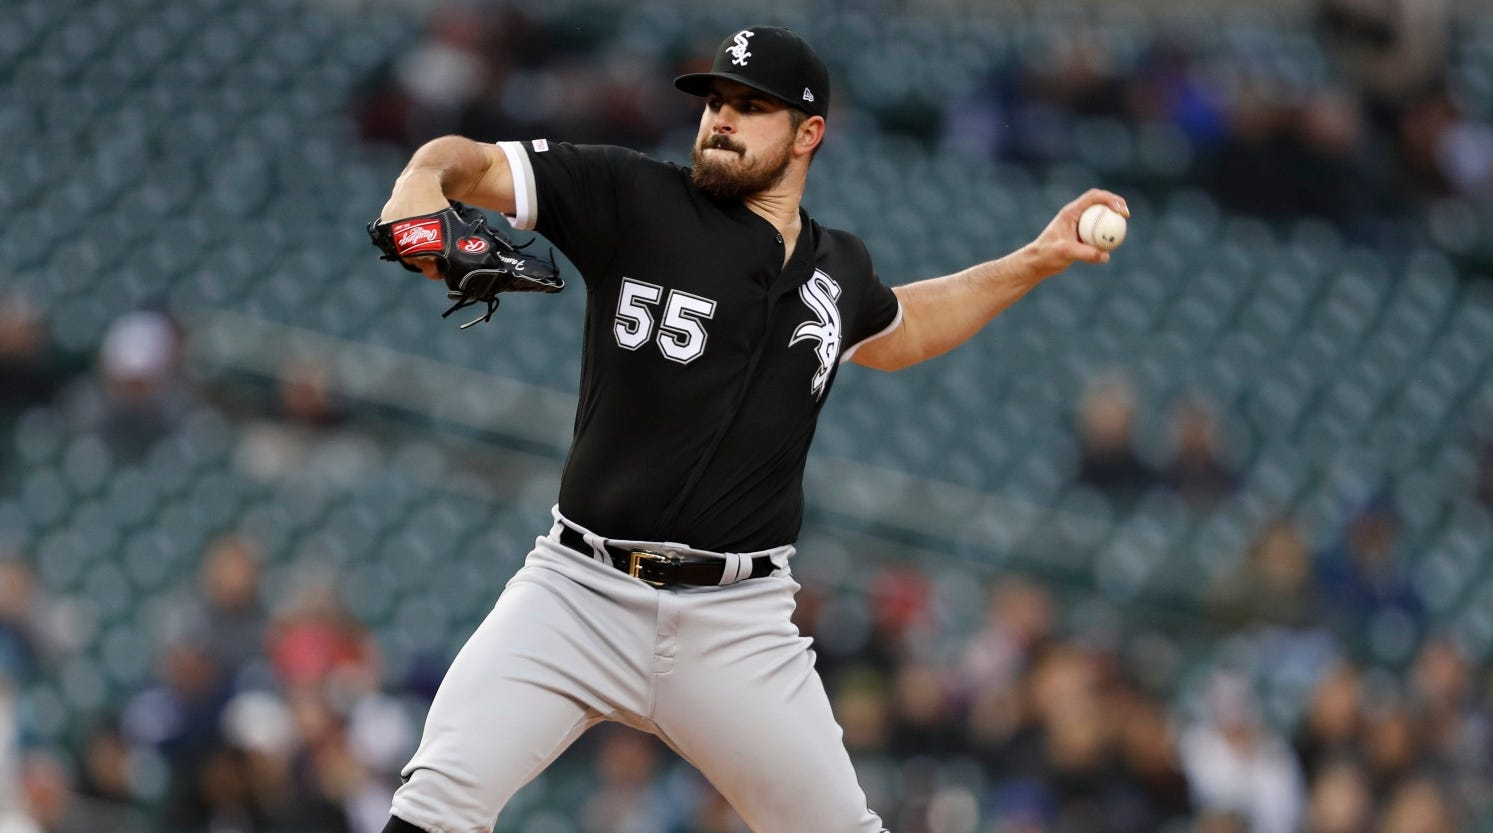 Seeking pitching help, Cubs will take a look at Carlos Rodon